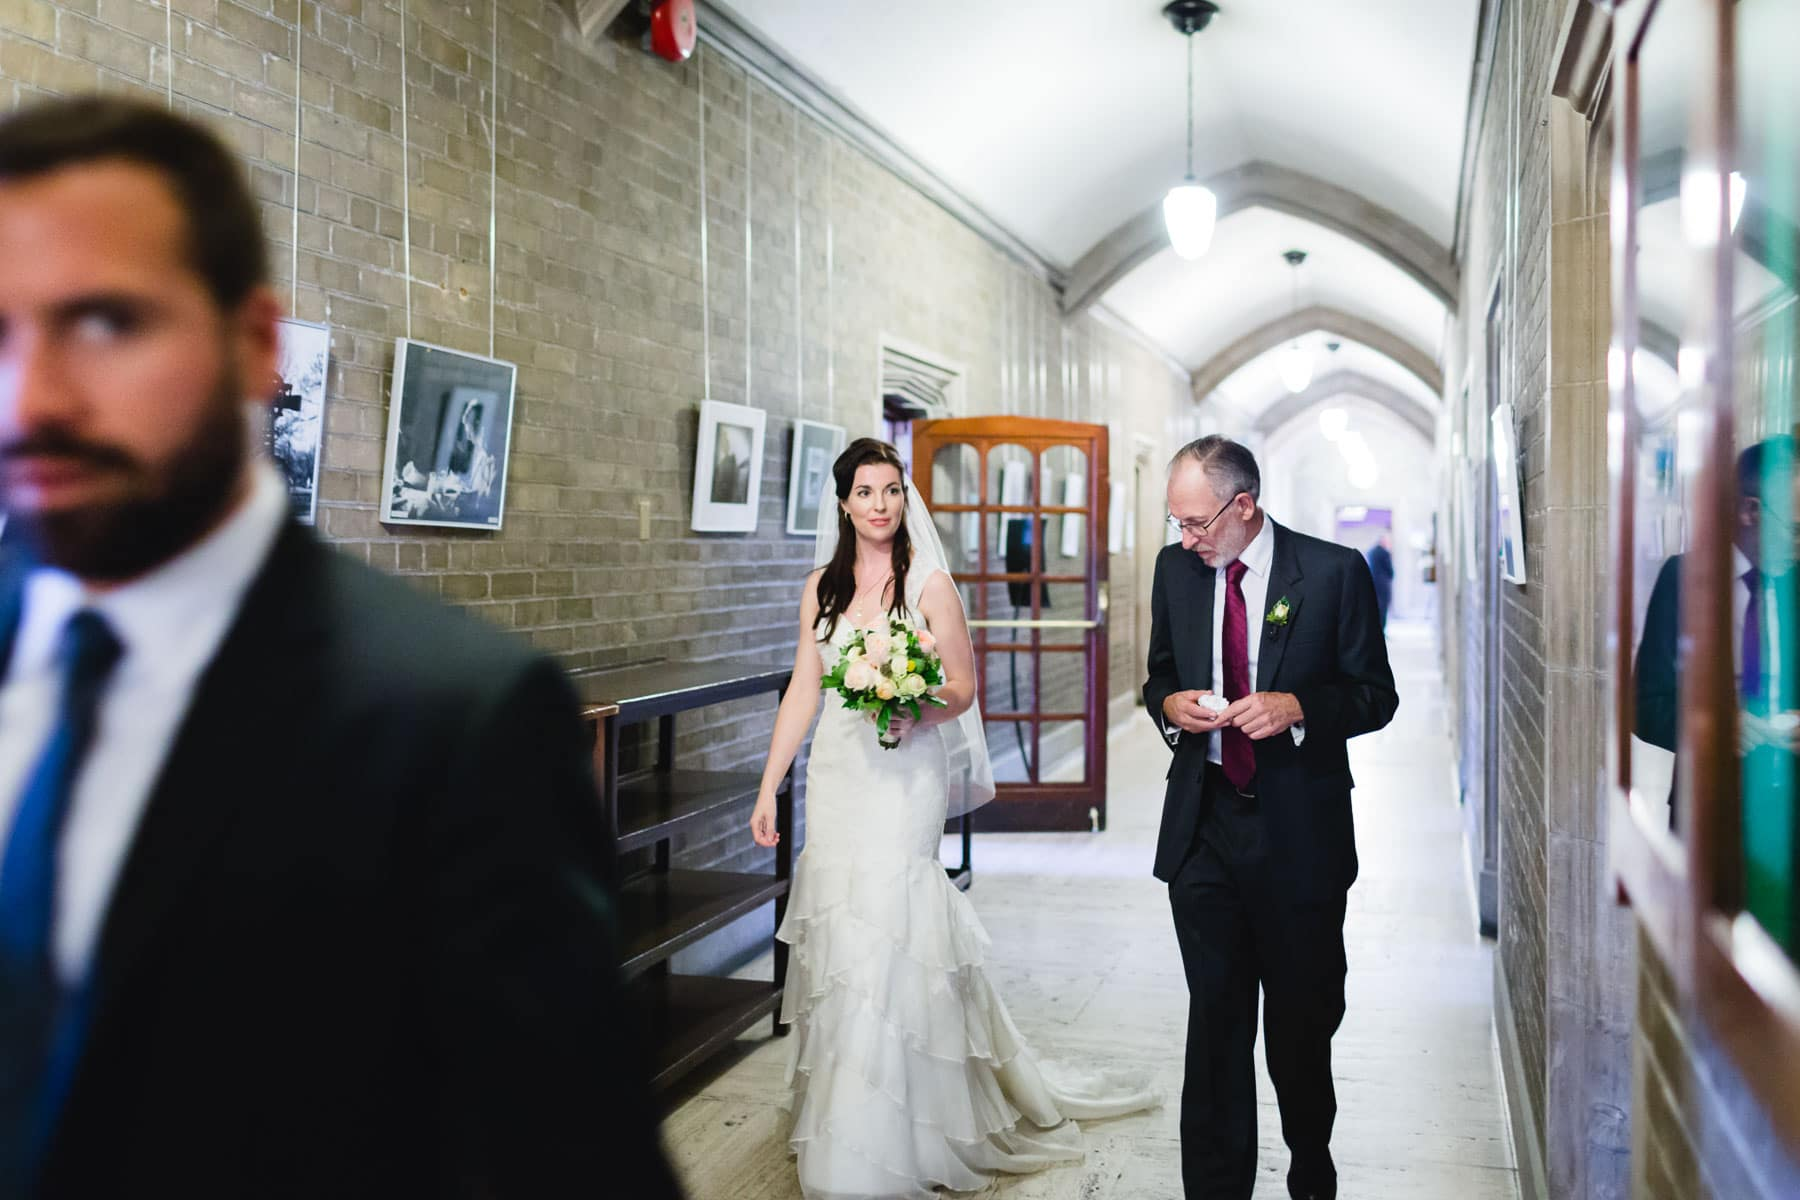 The bride and her father walk through the hallway of Hart House.